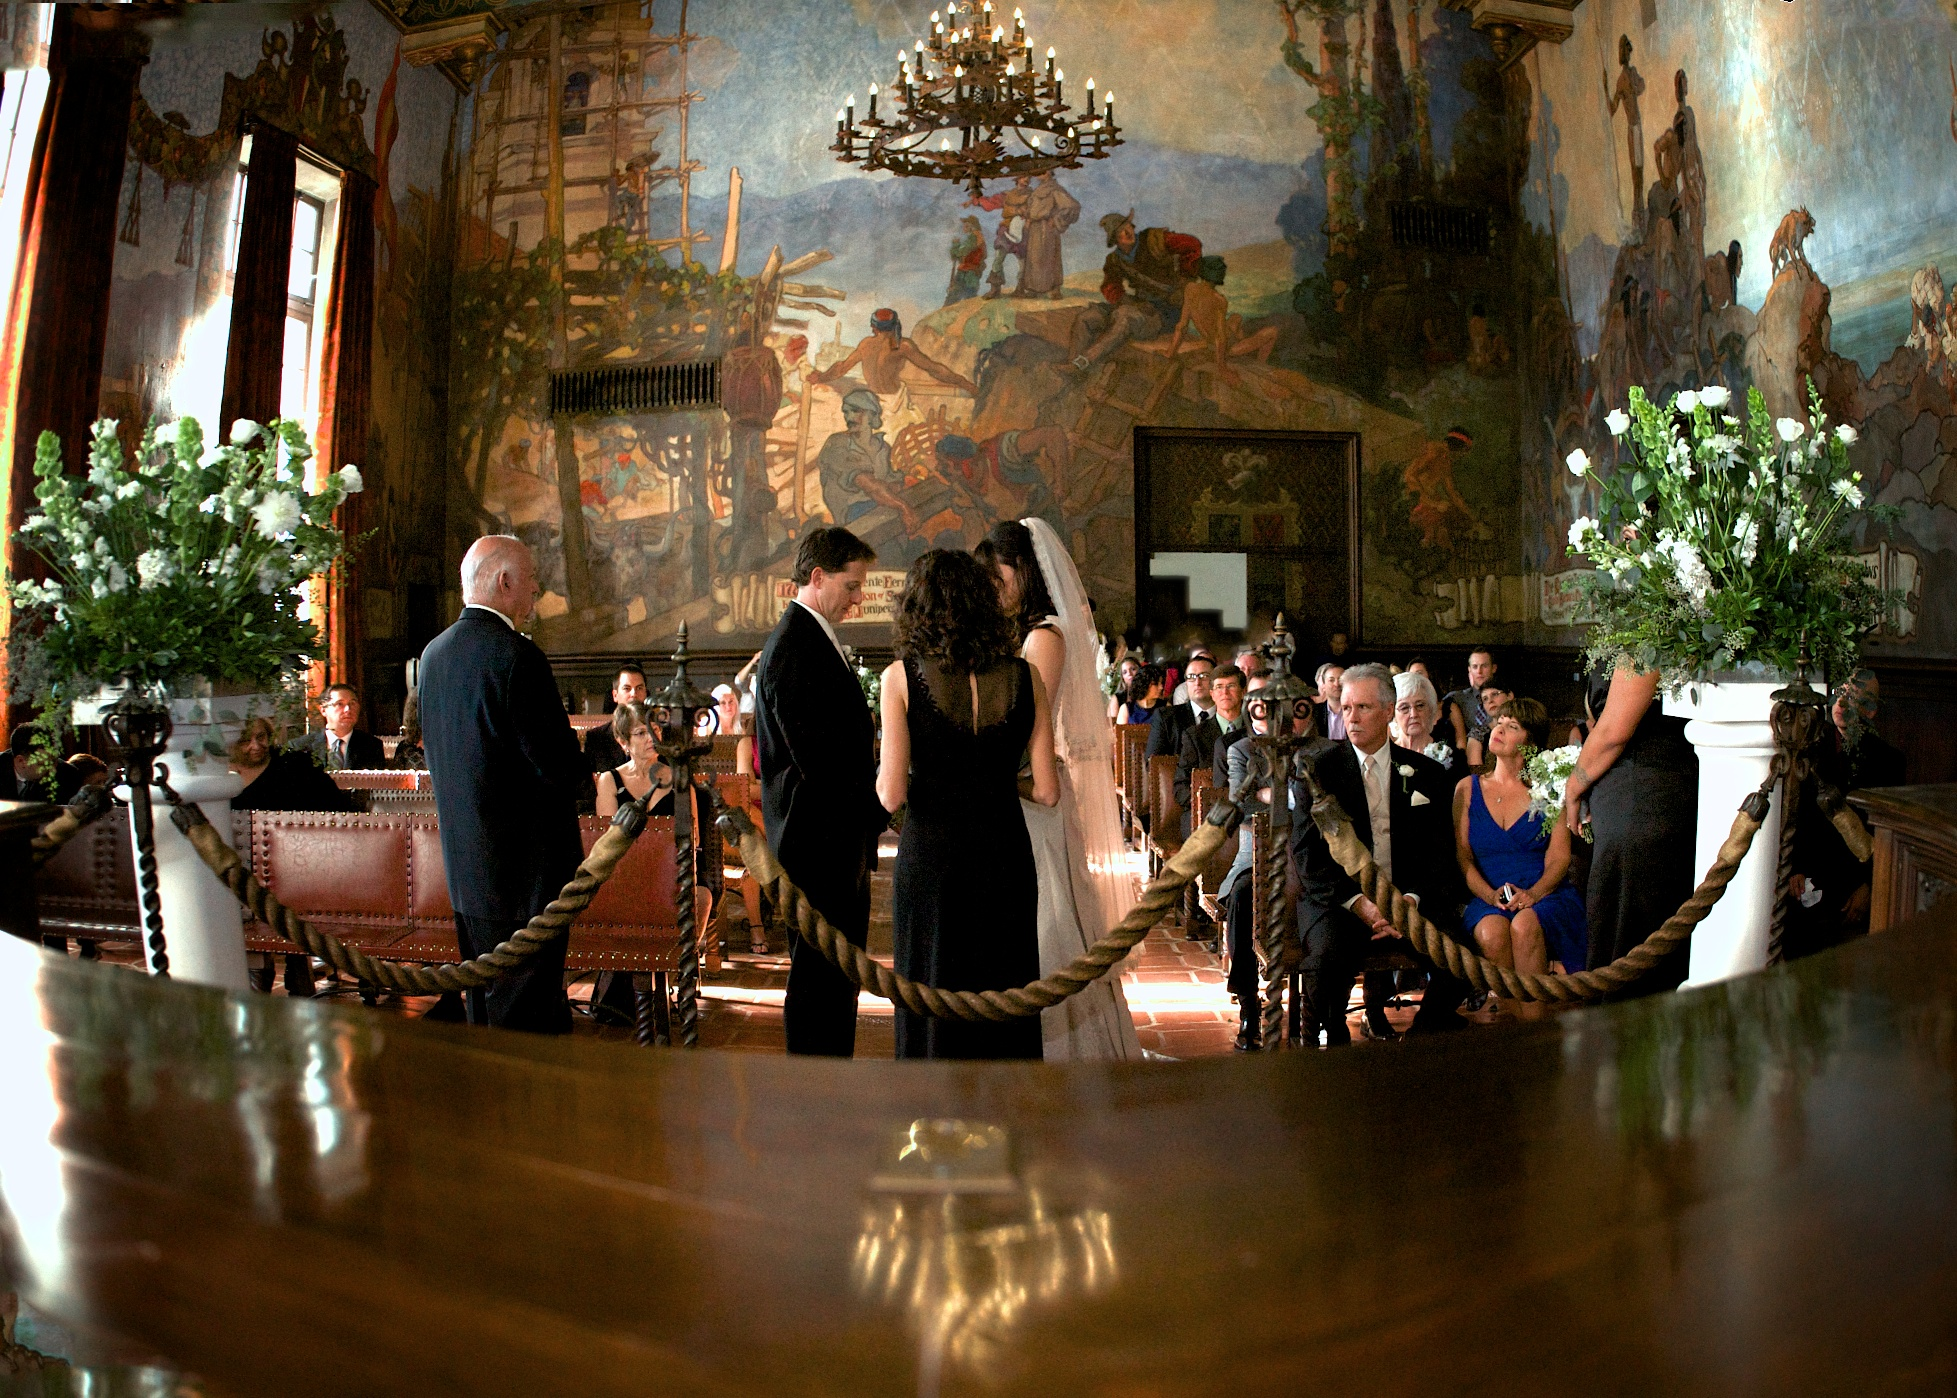 Santa Barbara Courthouse Mural Room Wedding The Maischside Blog